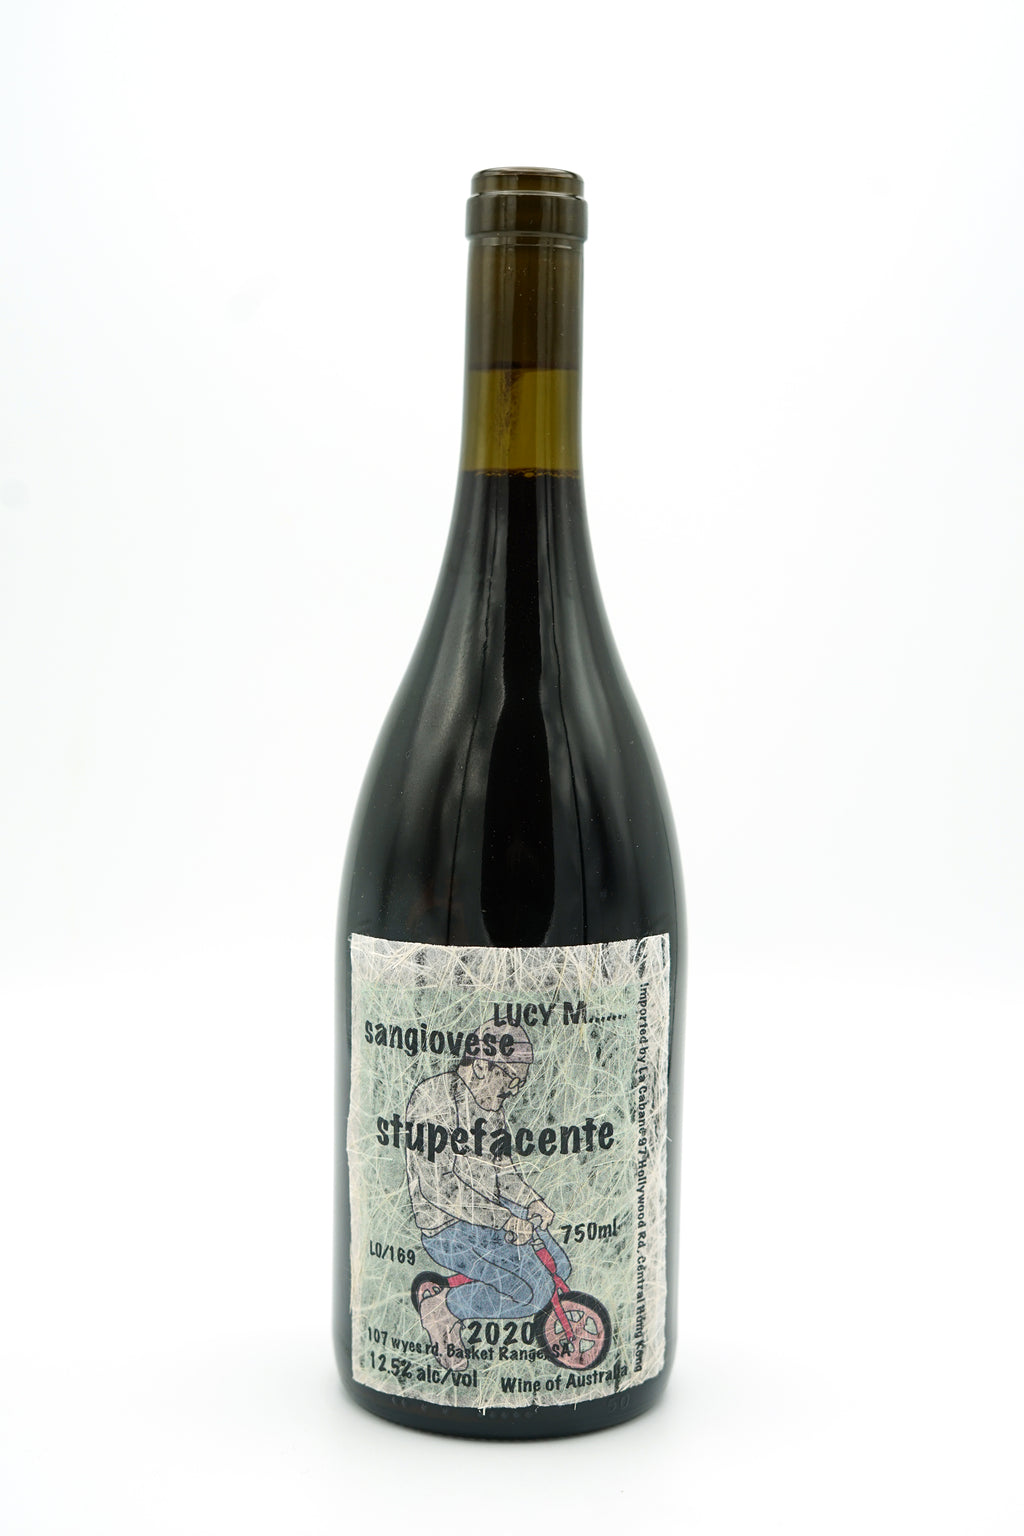 Sangiovese Stupefacente 2020 - Lucy Margaux - SOLD OUT